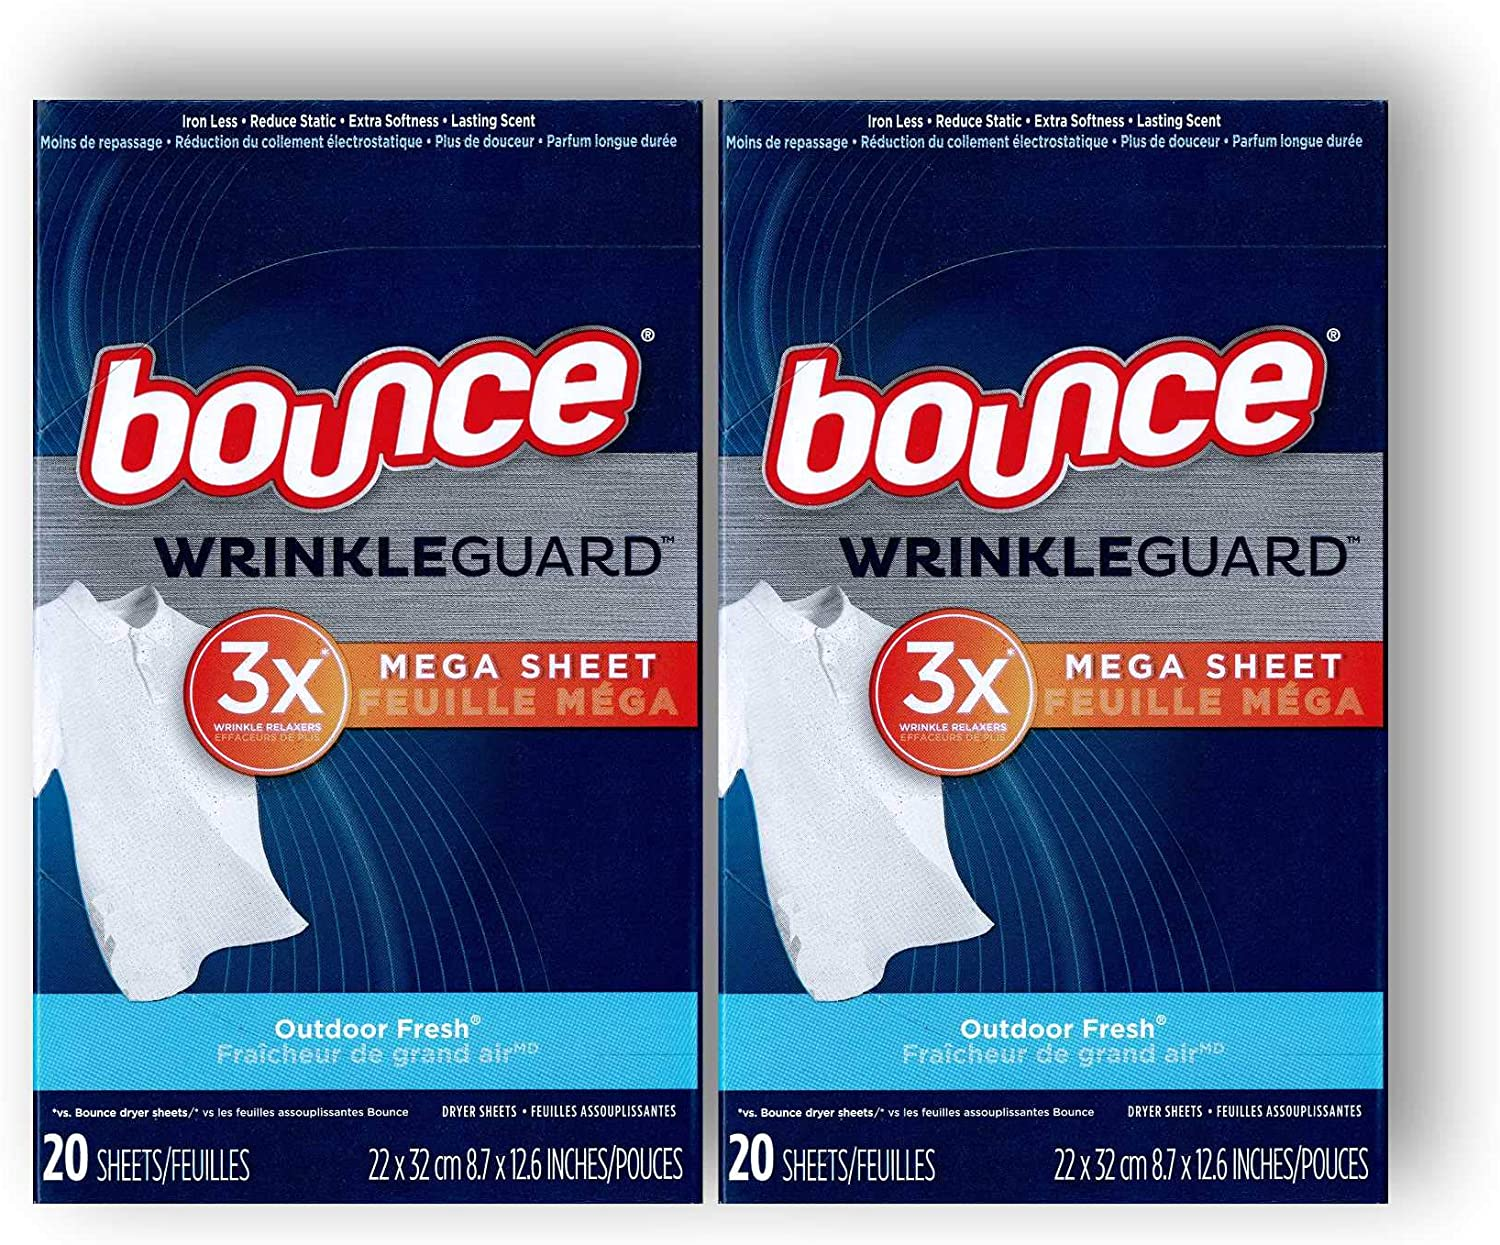 Bounce Wrinkle Guard Dryer Sheets - Outdoor Fresh - Mega Sheet - 20 Count Sheets Per Box - Pack of 2 Boxes